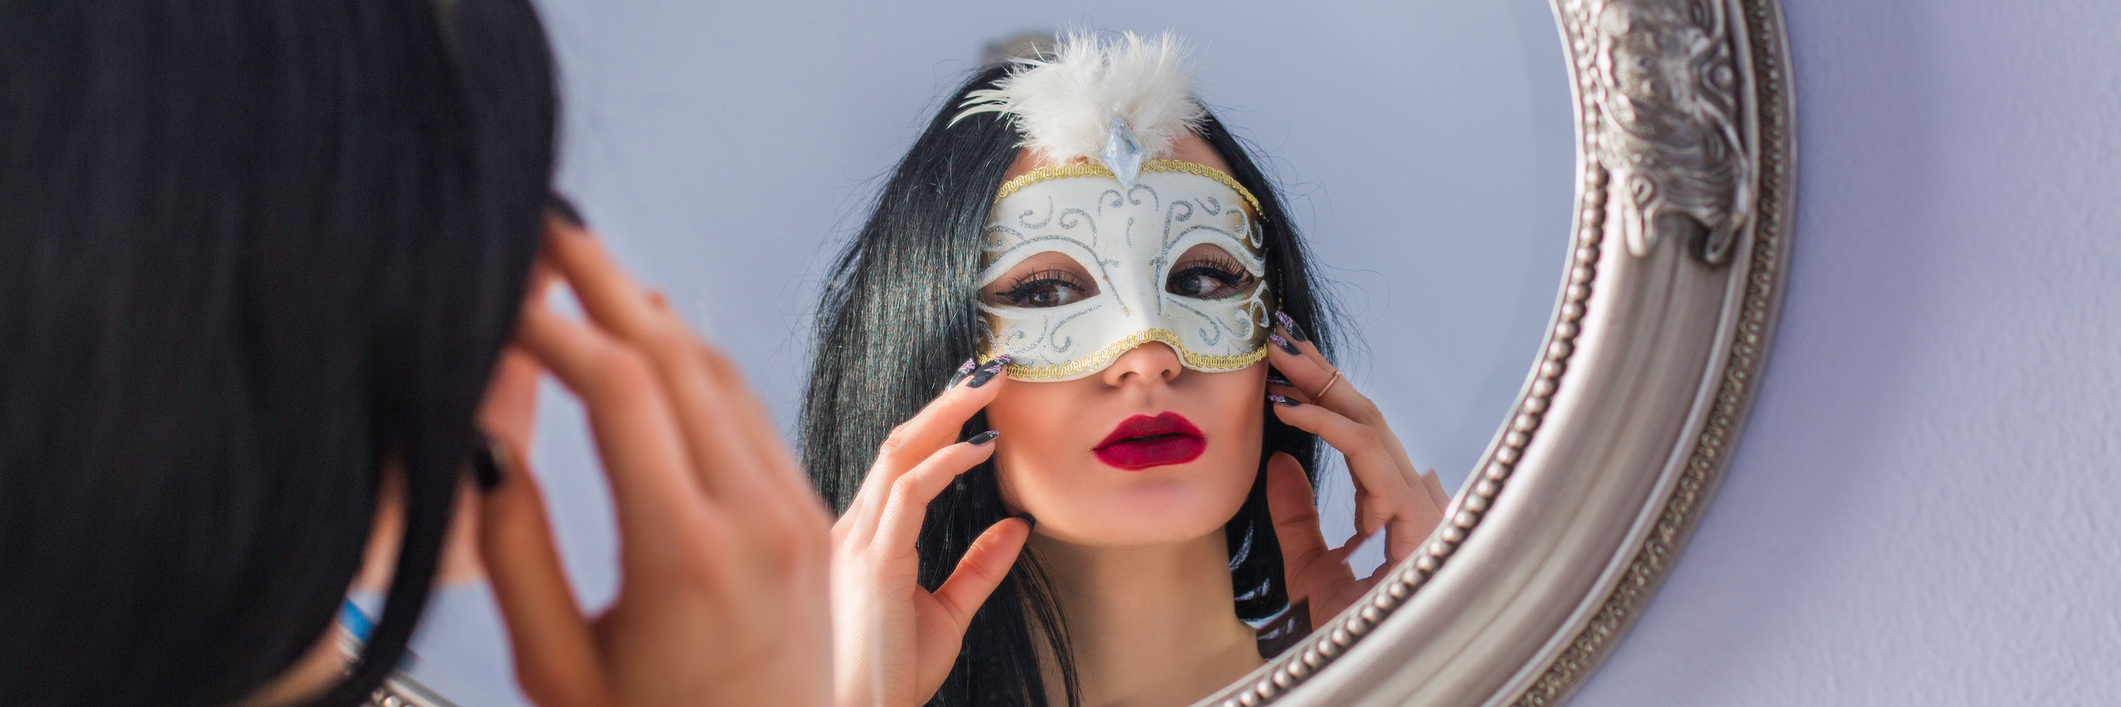 Woman looks in mirror, taking off mask.